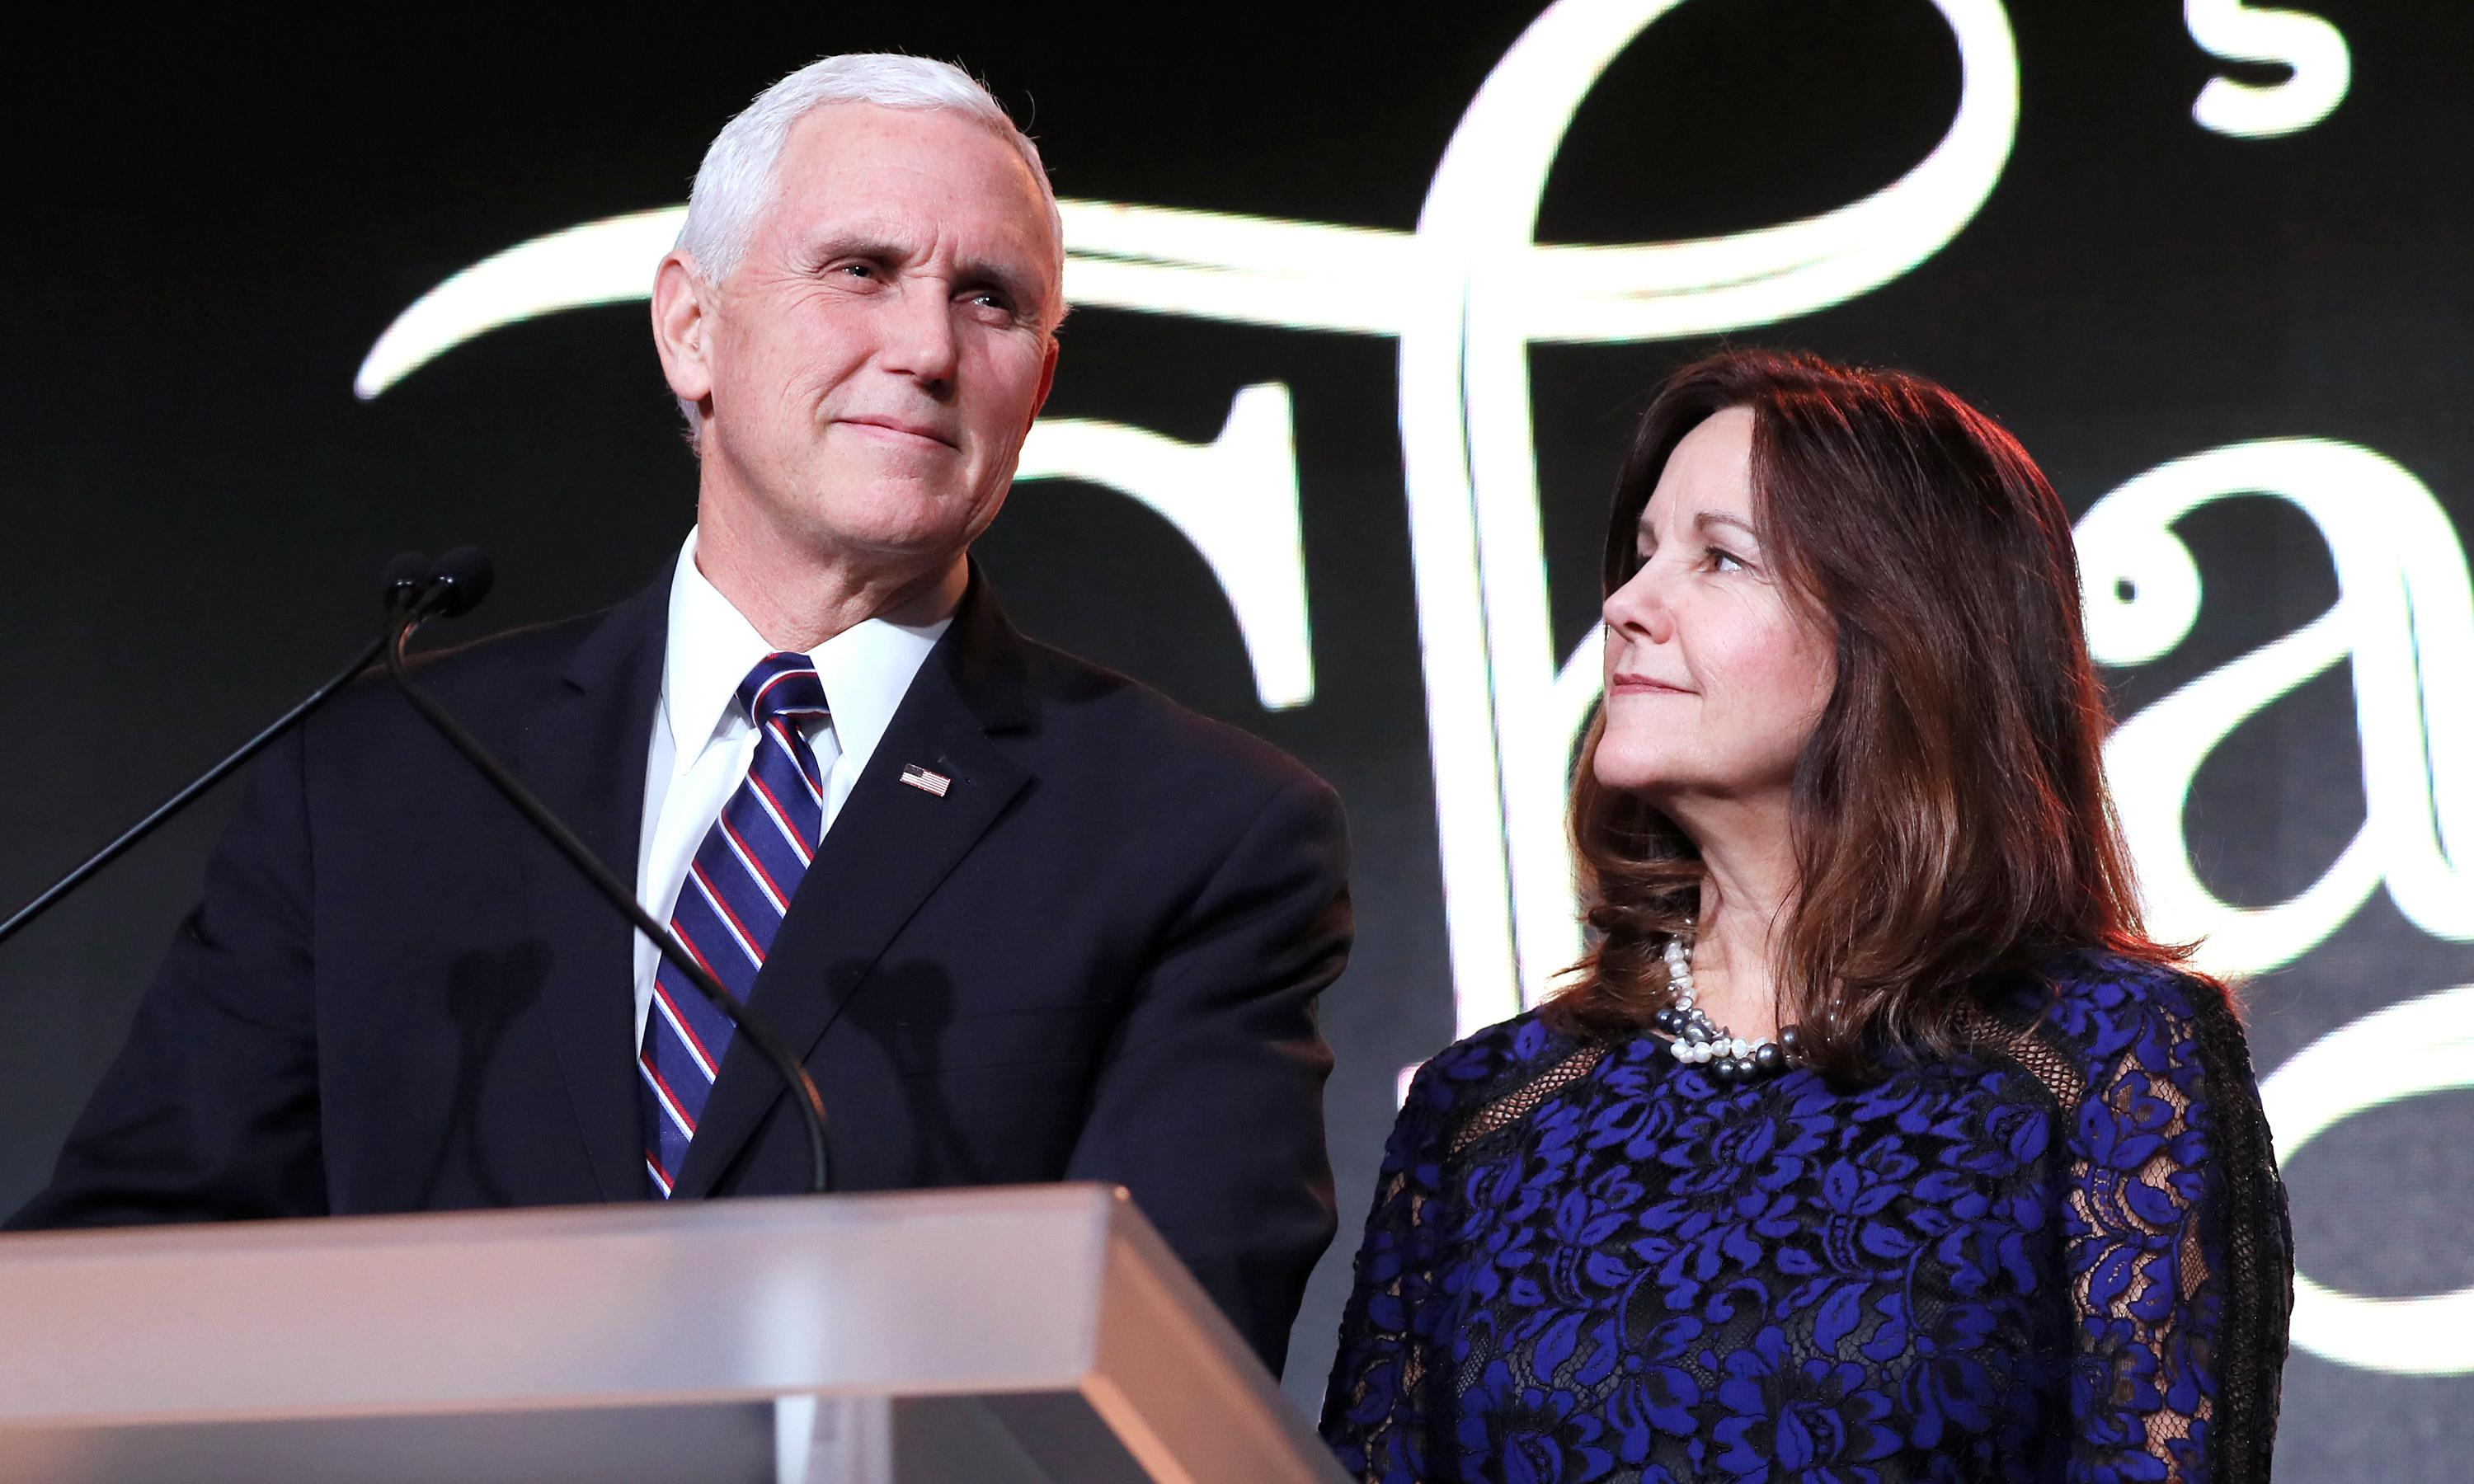 President Pence? That vision should terrify women